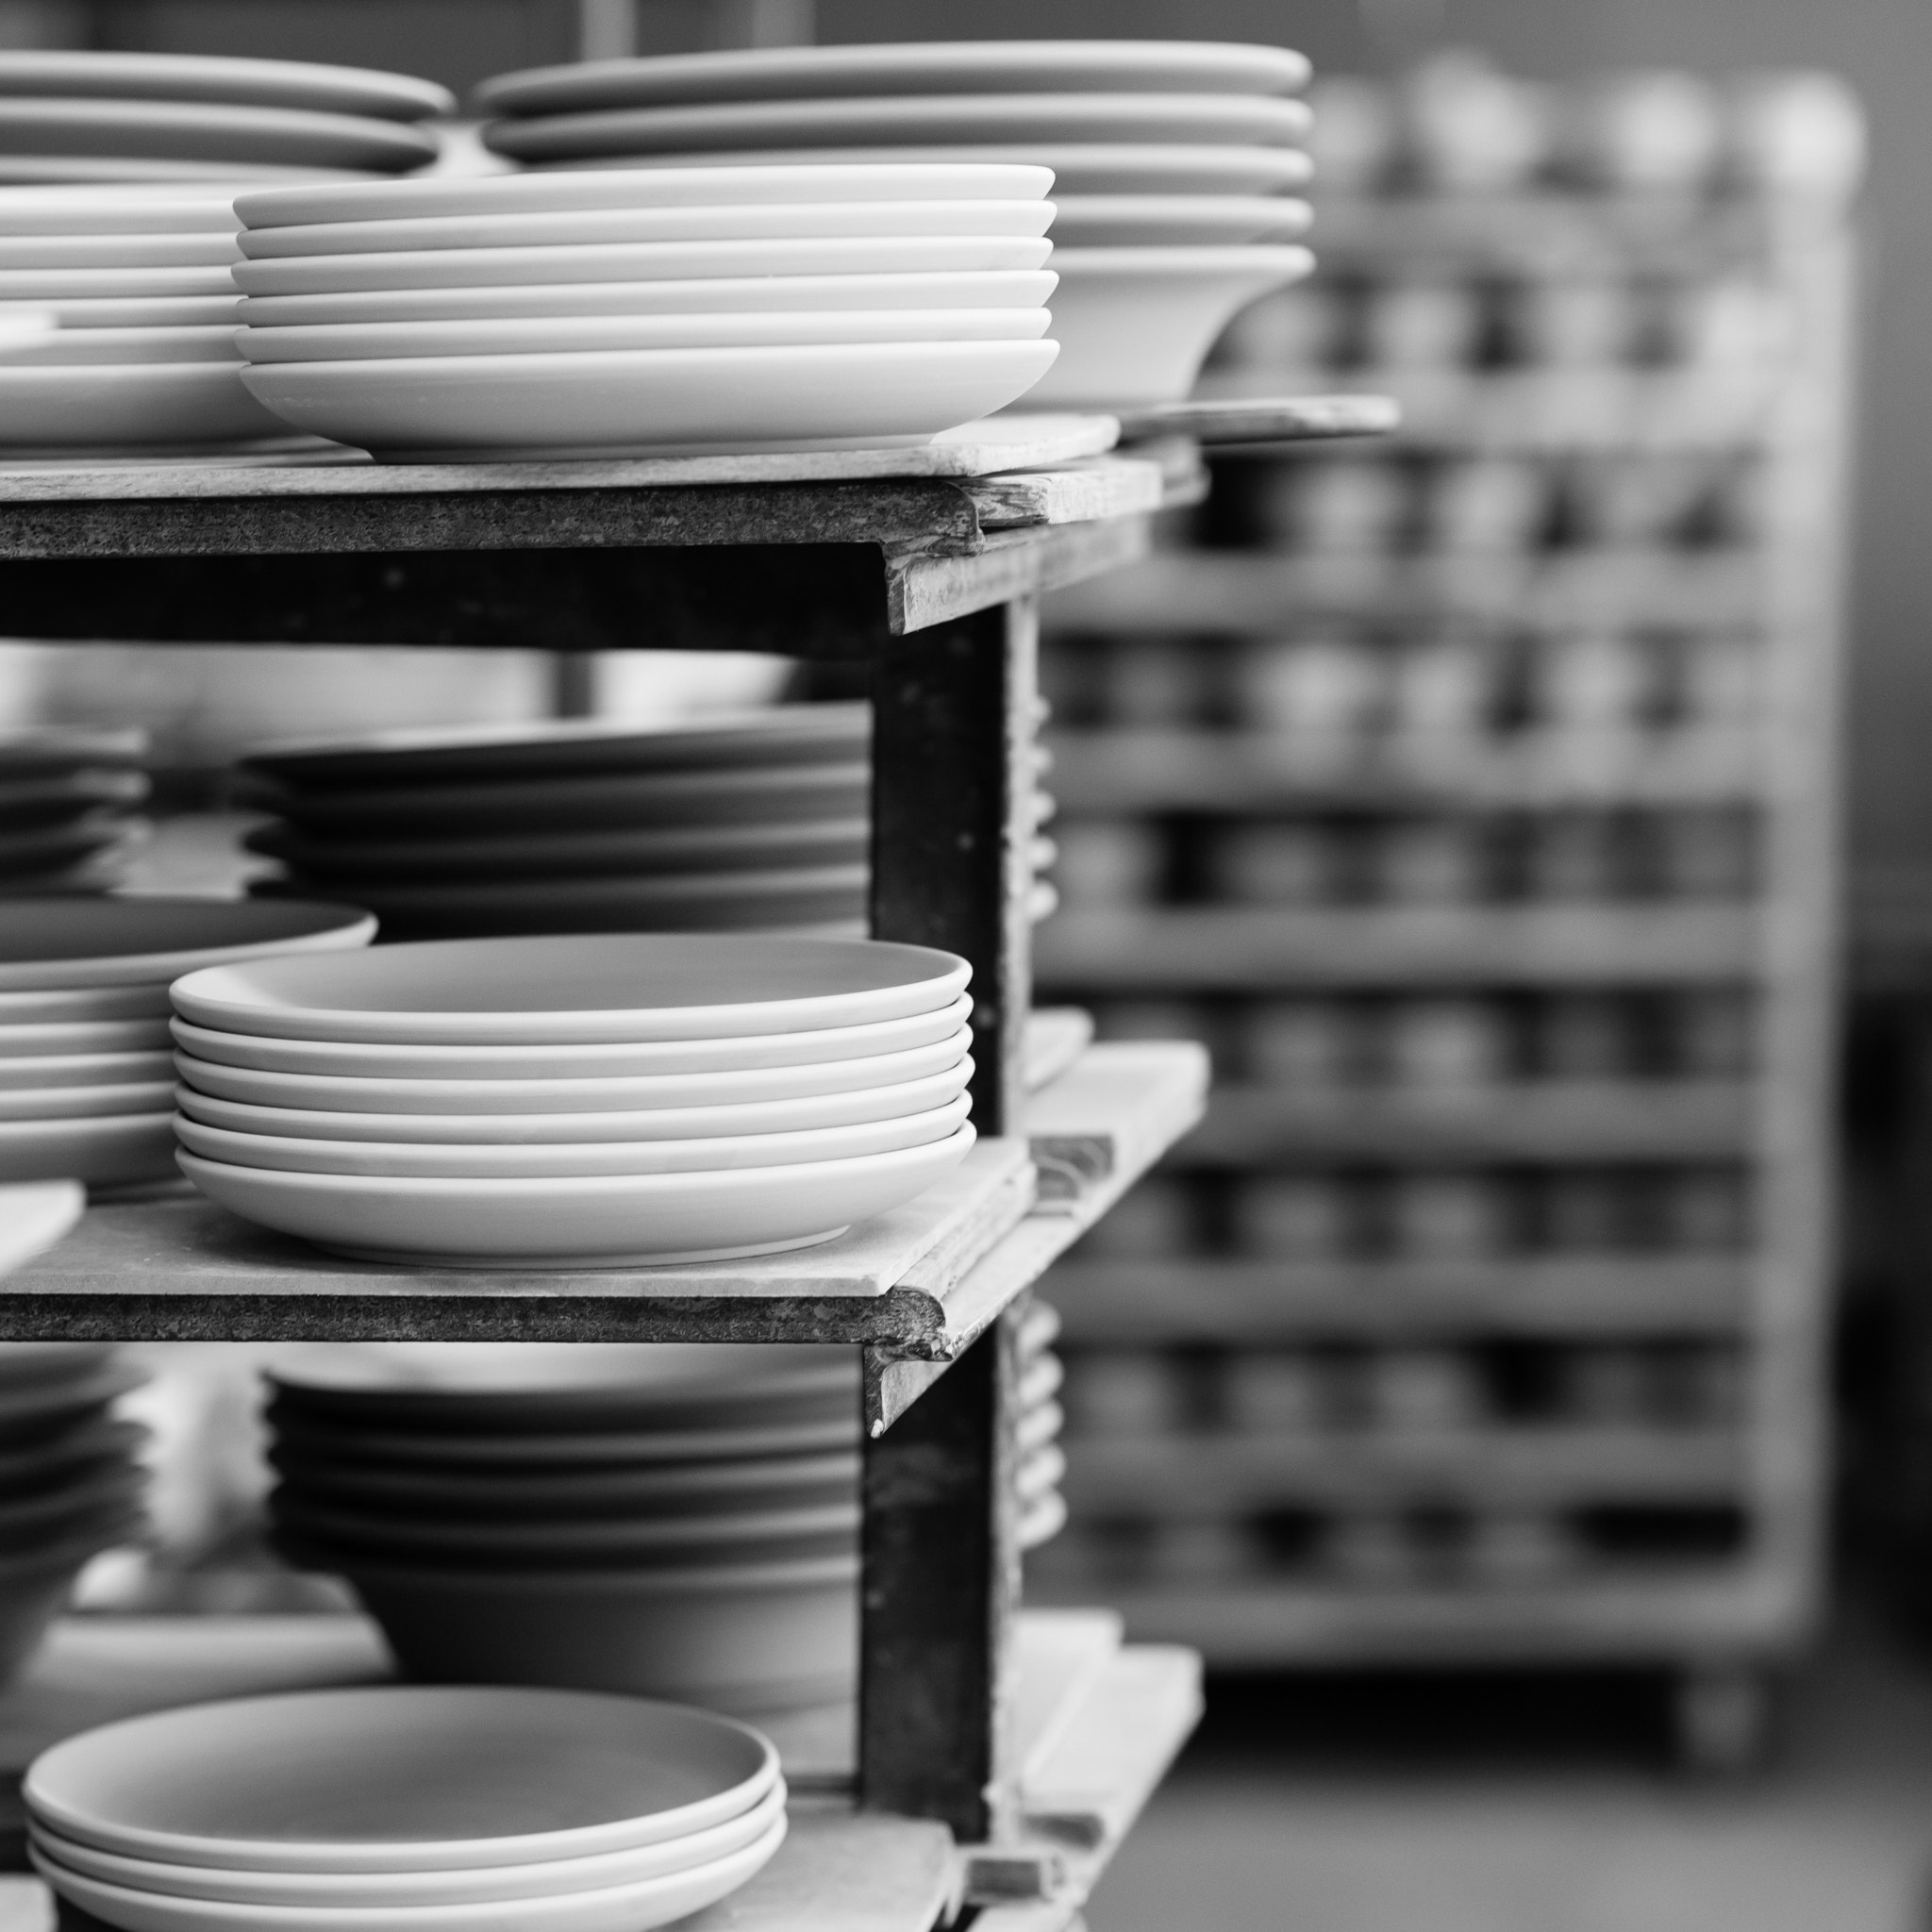 Photograph Plates 2 by Ben Eloy on 500px